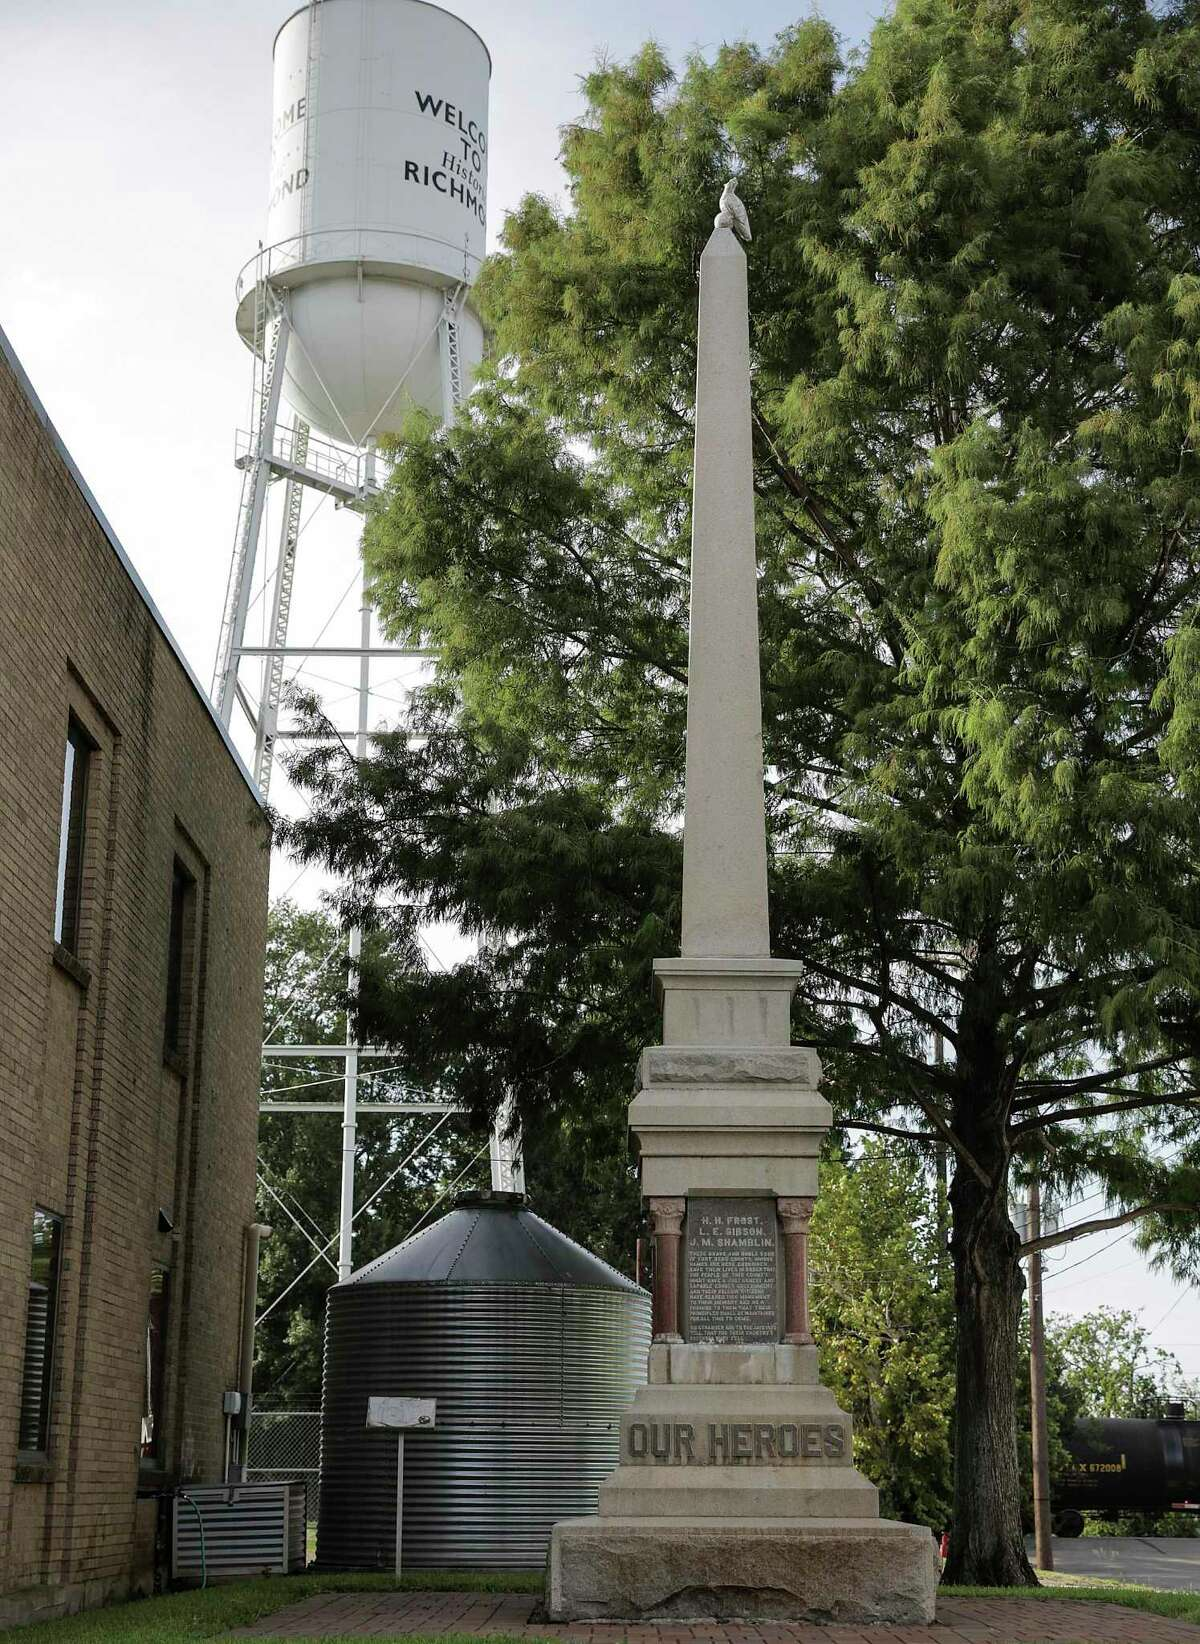 A monument erected commemorating those in the Jaybird Party who died in the Jaybird-Woodpecker War. Photos in downtown Richmond on Aug. 16, 2017.